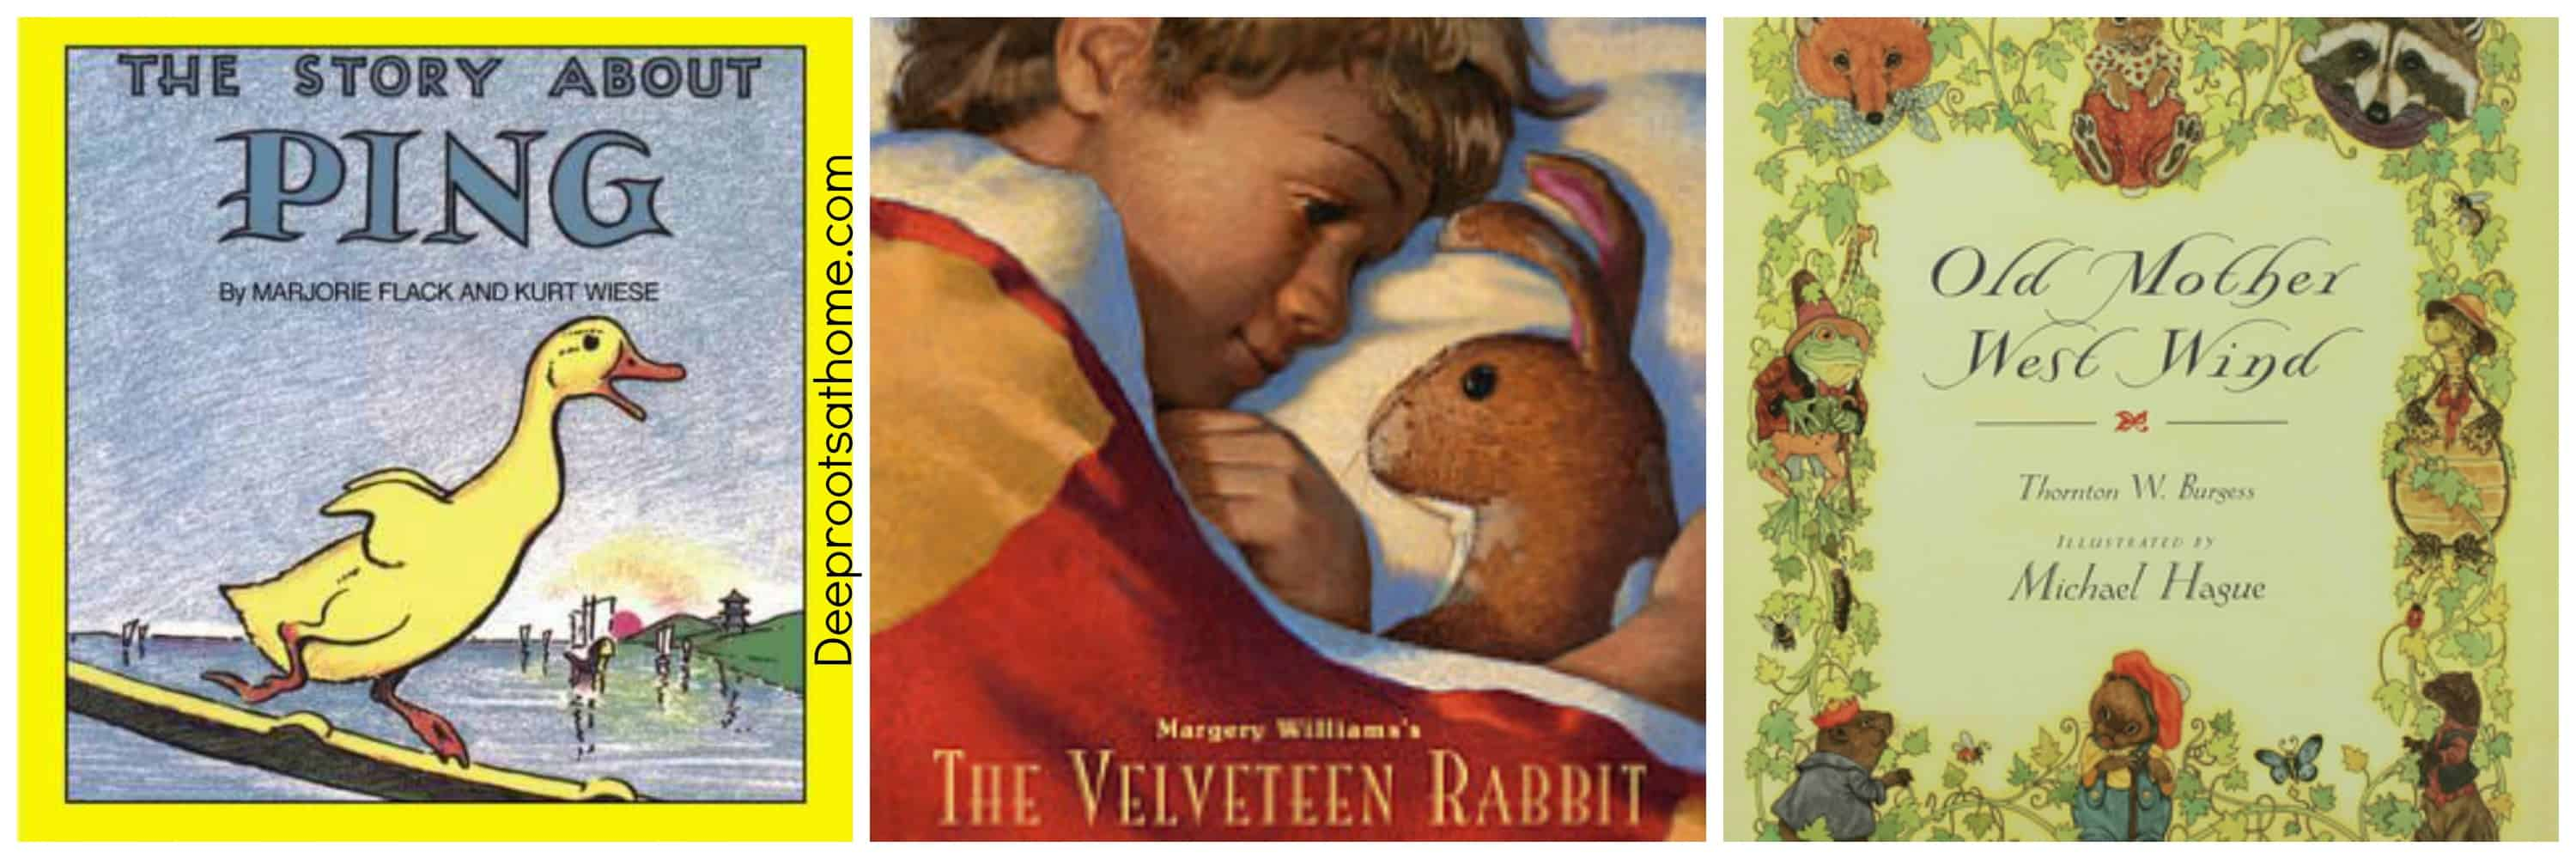 25 Beloved, Time-Tested Read Alouds For Young Children, Alfredo Rodriguez, father reading to his children, man reading, children listening, boys wearing hats, pioneer family, grandfather, boy holding lantern, reading the bible, on the porch, by candlelight, collie dog, painting, Holding the Light, artist, peaceful time, teaching his children, boys, girl, cabin, dusk, beloved books, wholesome reading, readers, The Story About Ping, The Velveteen Rabbit, Old Mother West Wind, Thornton Burgess, classics, beloved, time-tested books,